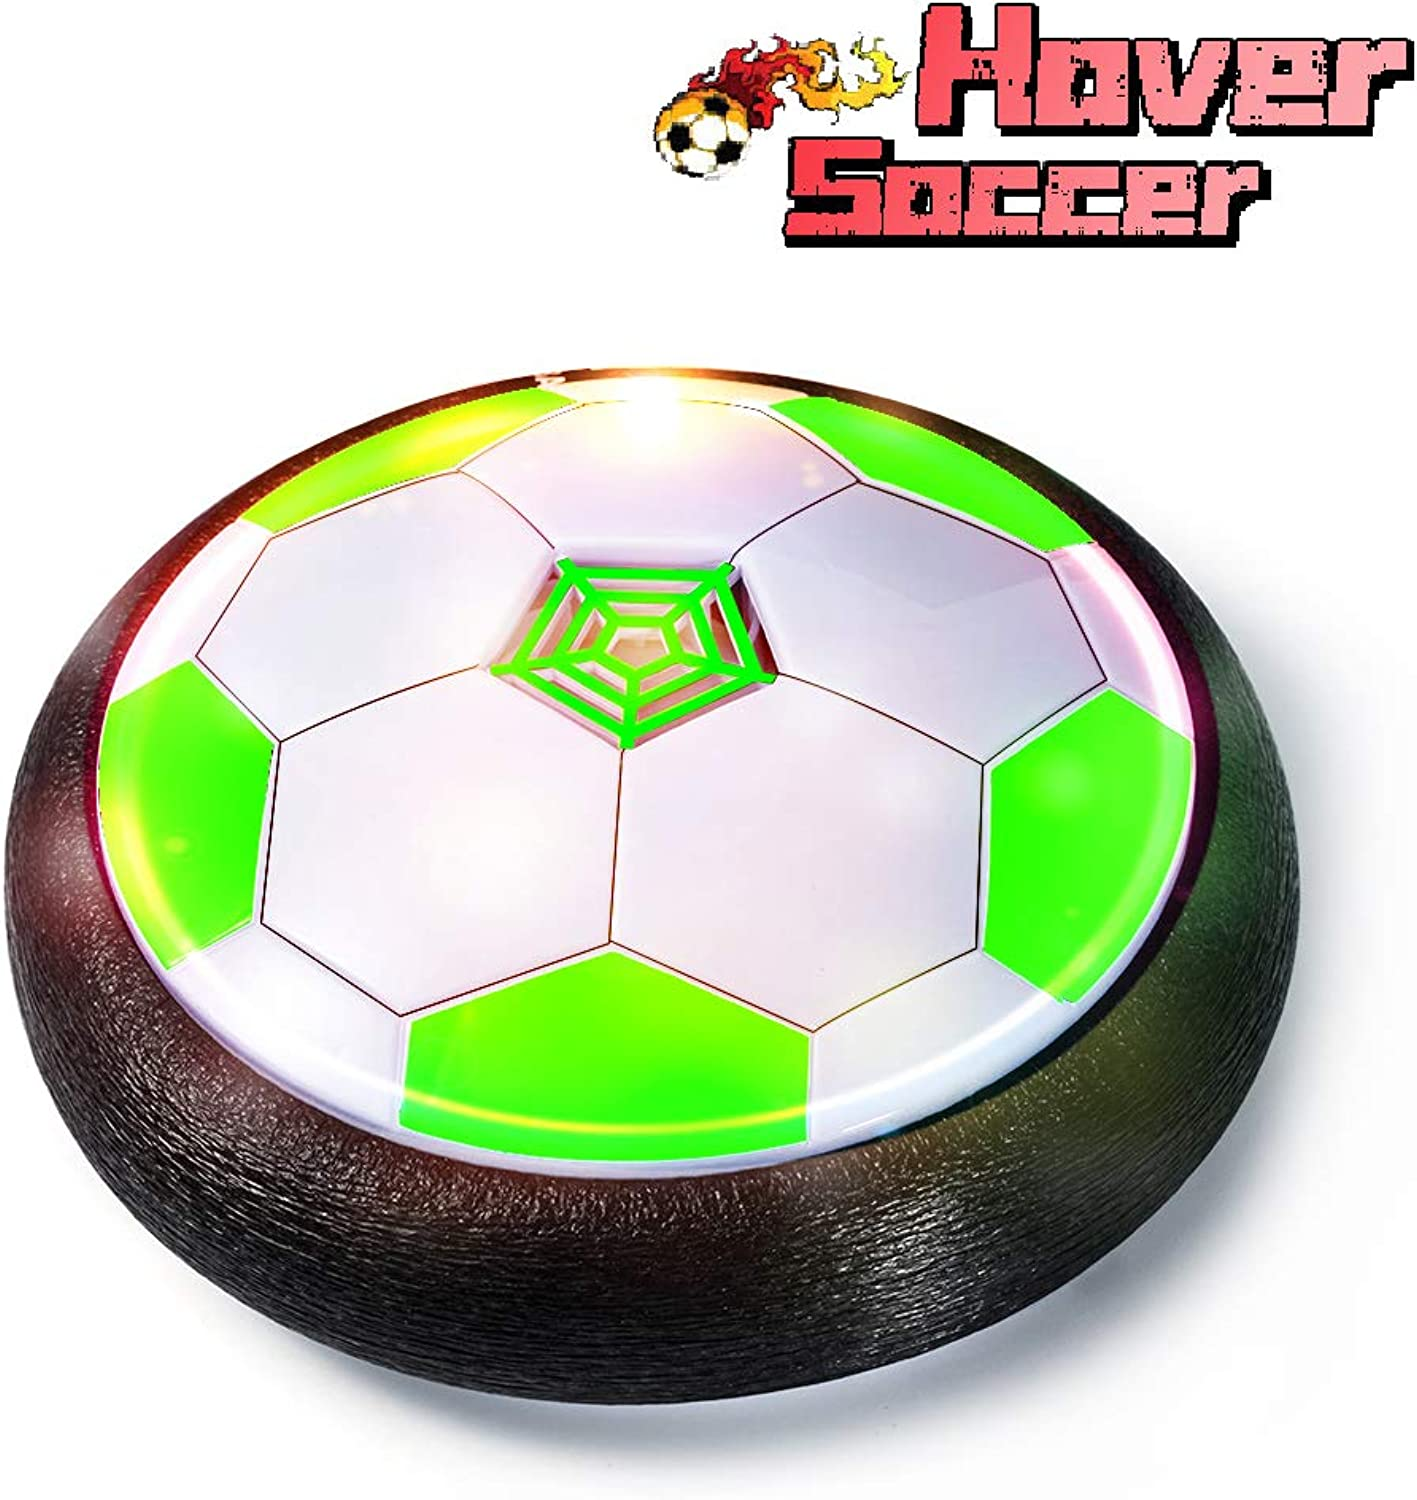 LOFEE Popular Toys for Kid Age 3-10, Hover Footall for Kids Presents for 4-9 Year Old Boy Toys Age 3-12 Toy for 3-9 Years Old Boys HB-Green